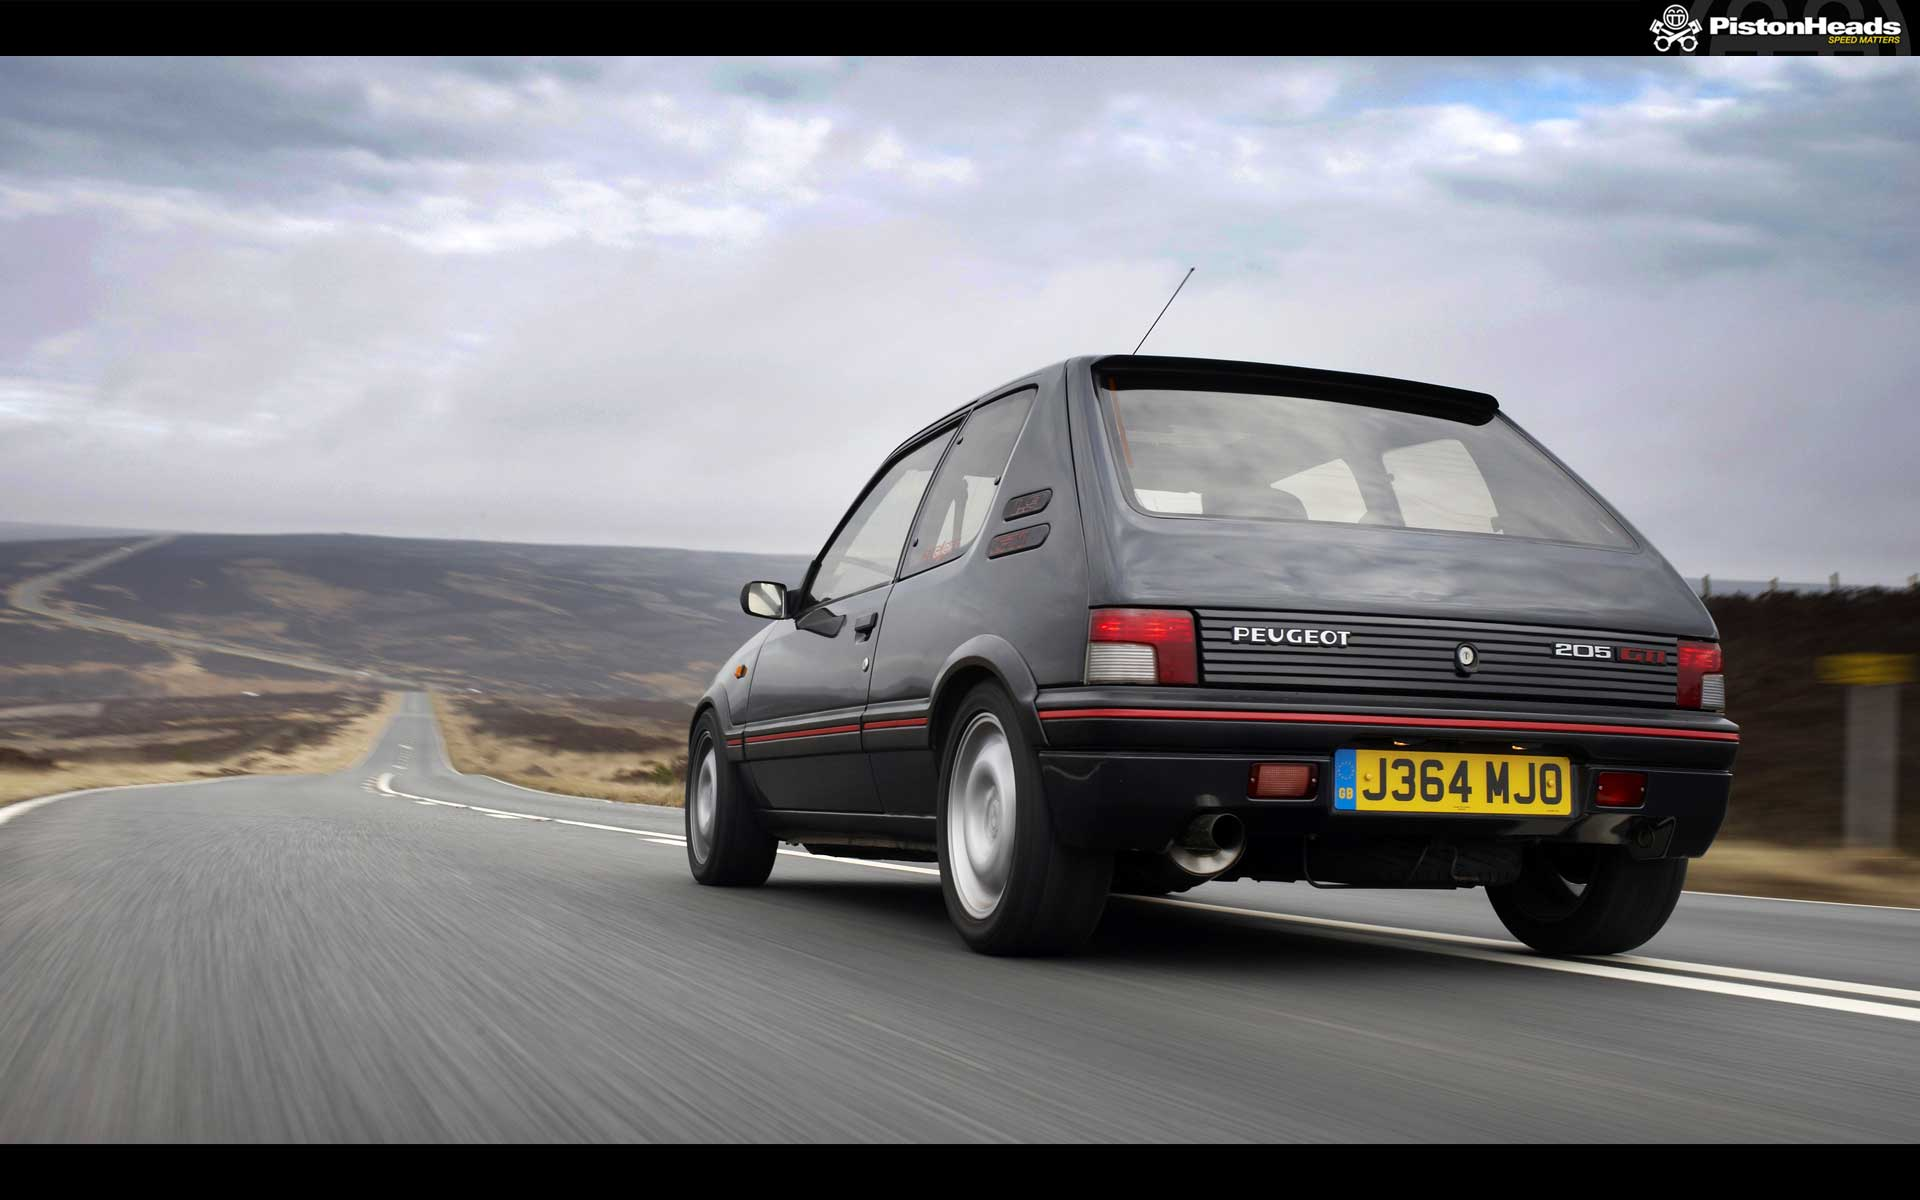 peugeot 205 gti pic of the week pistonheads. Black Bedroom Furniture Sets. Home Design Ideas